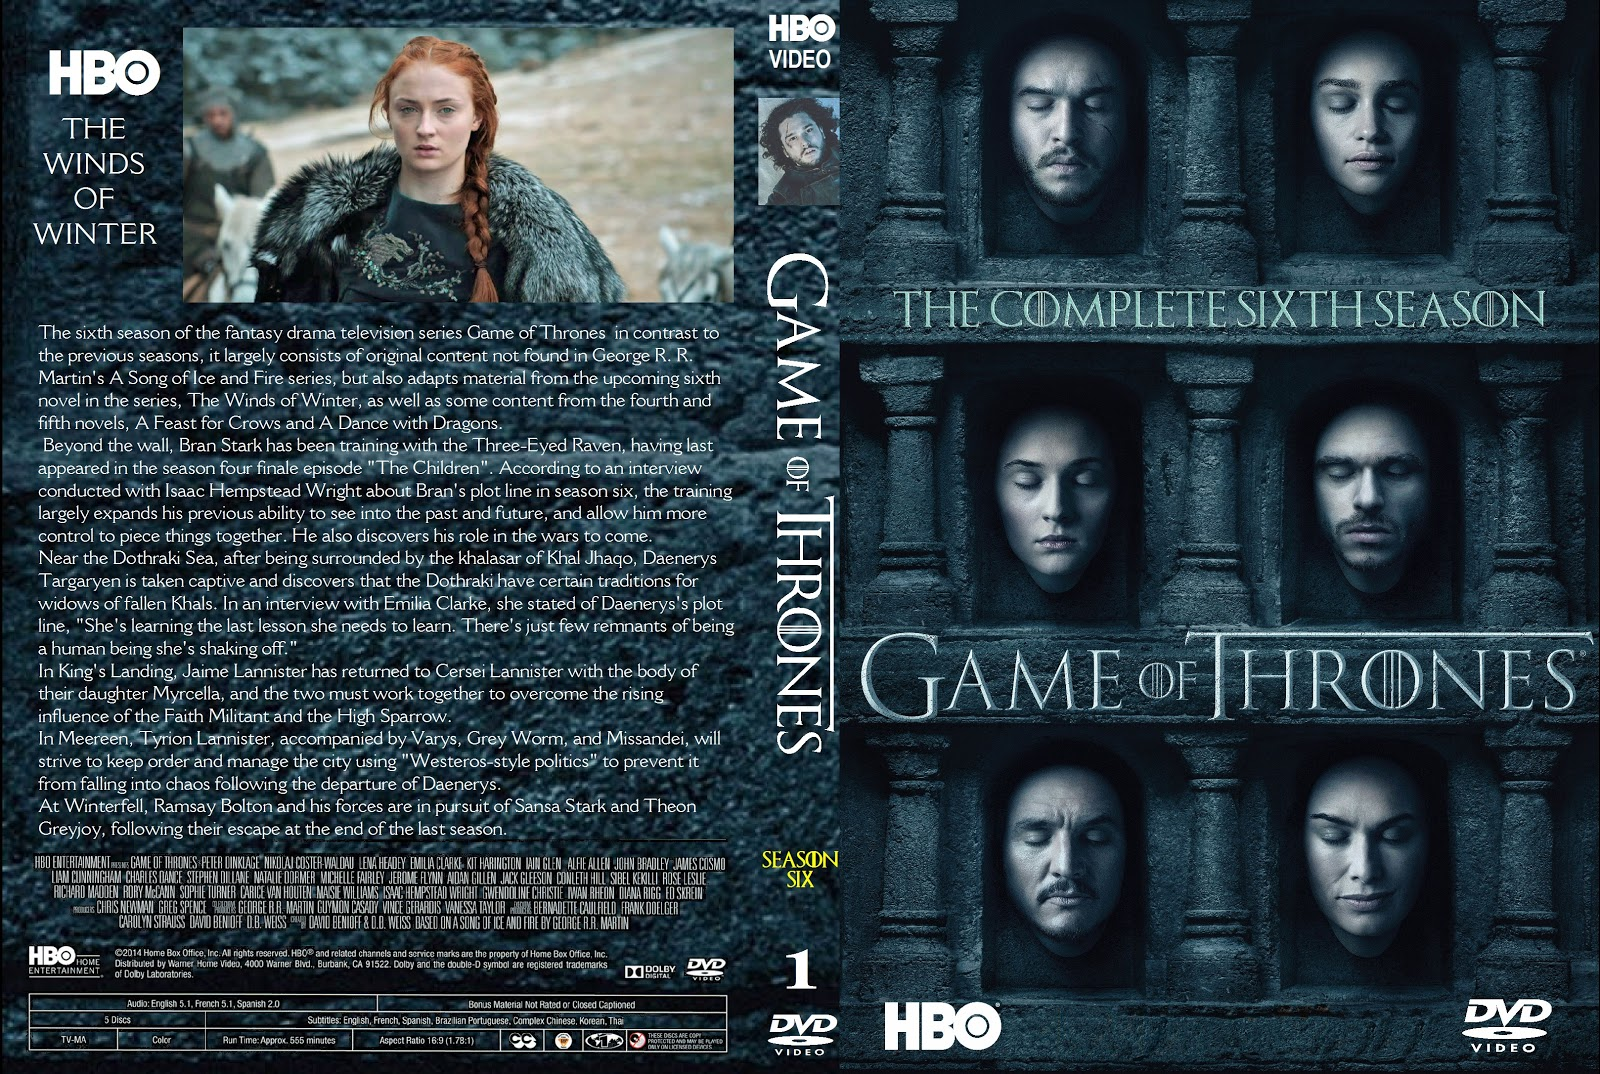 Capa DVD Game Of Thrones Sexta Temporada D1 a D3